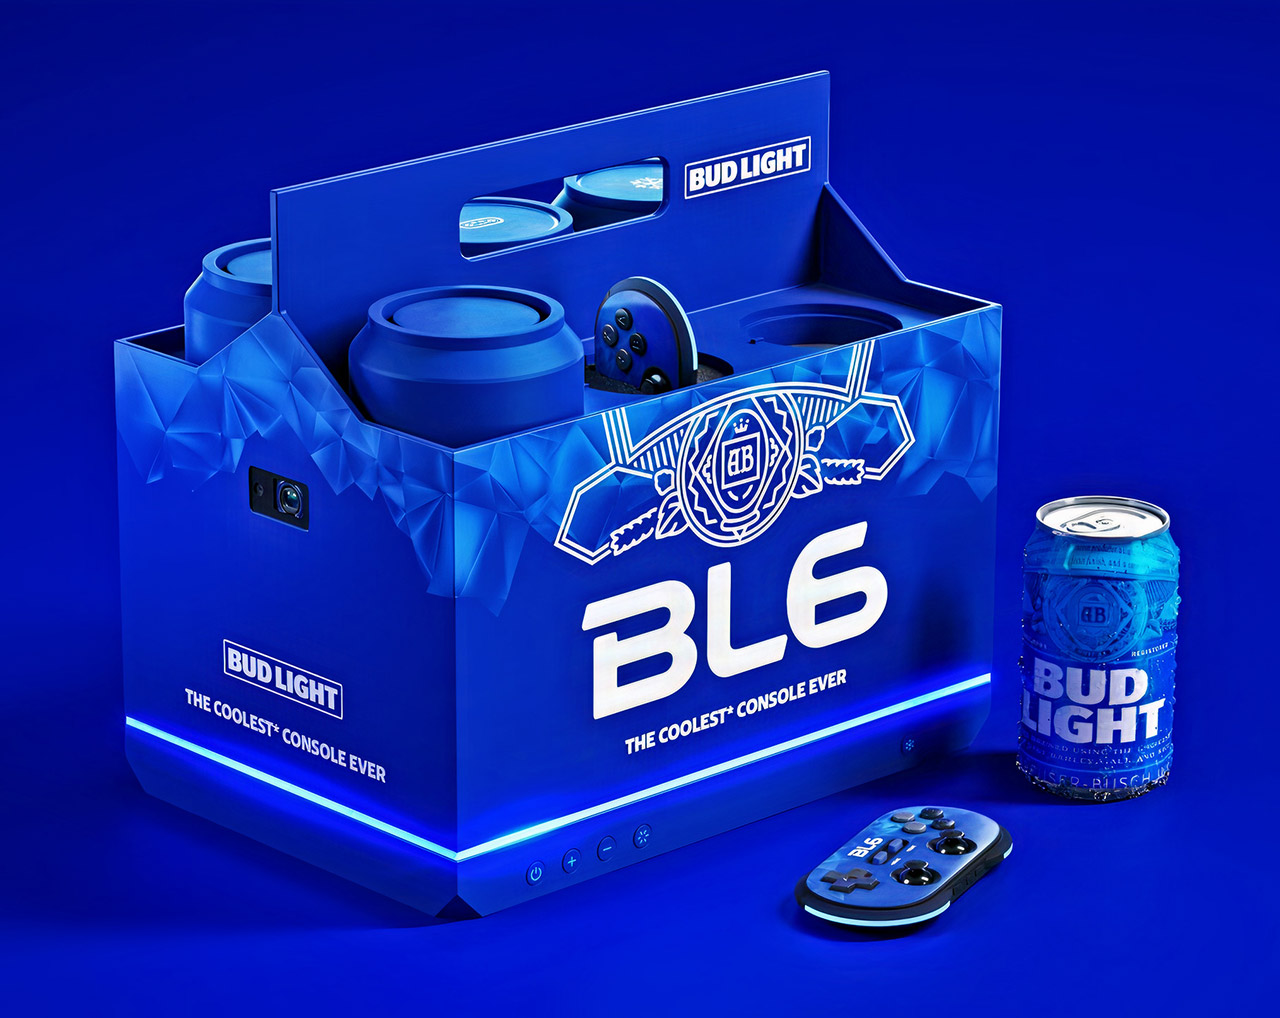 Budweiser BL6 Game Console Hands-On